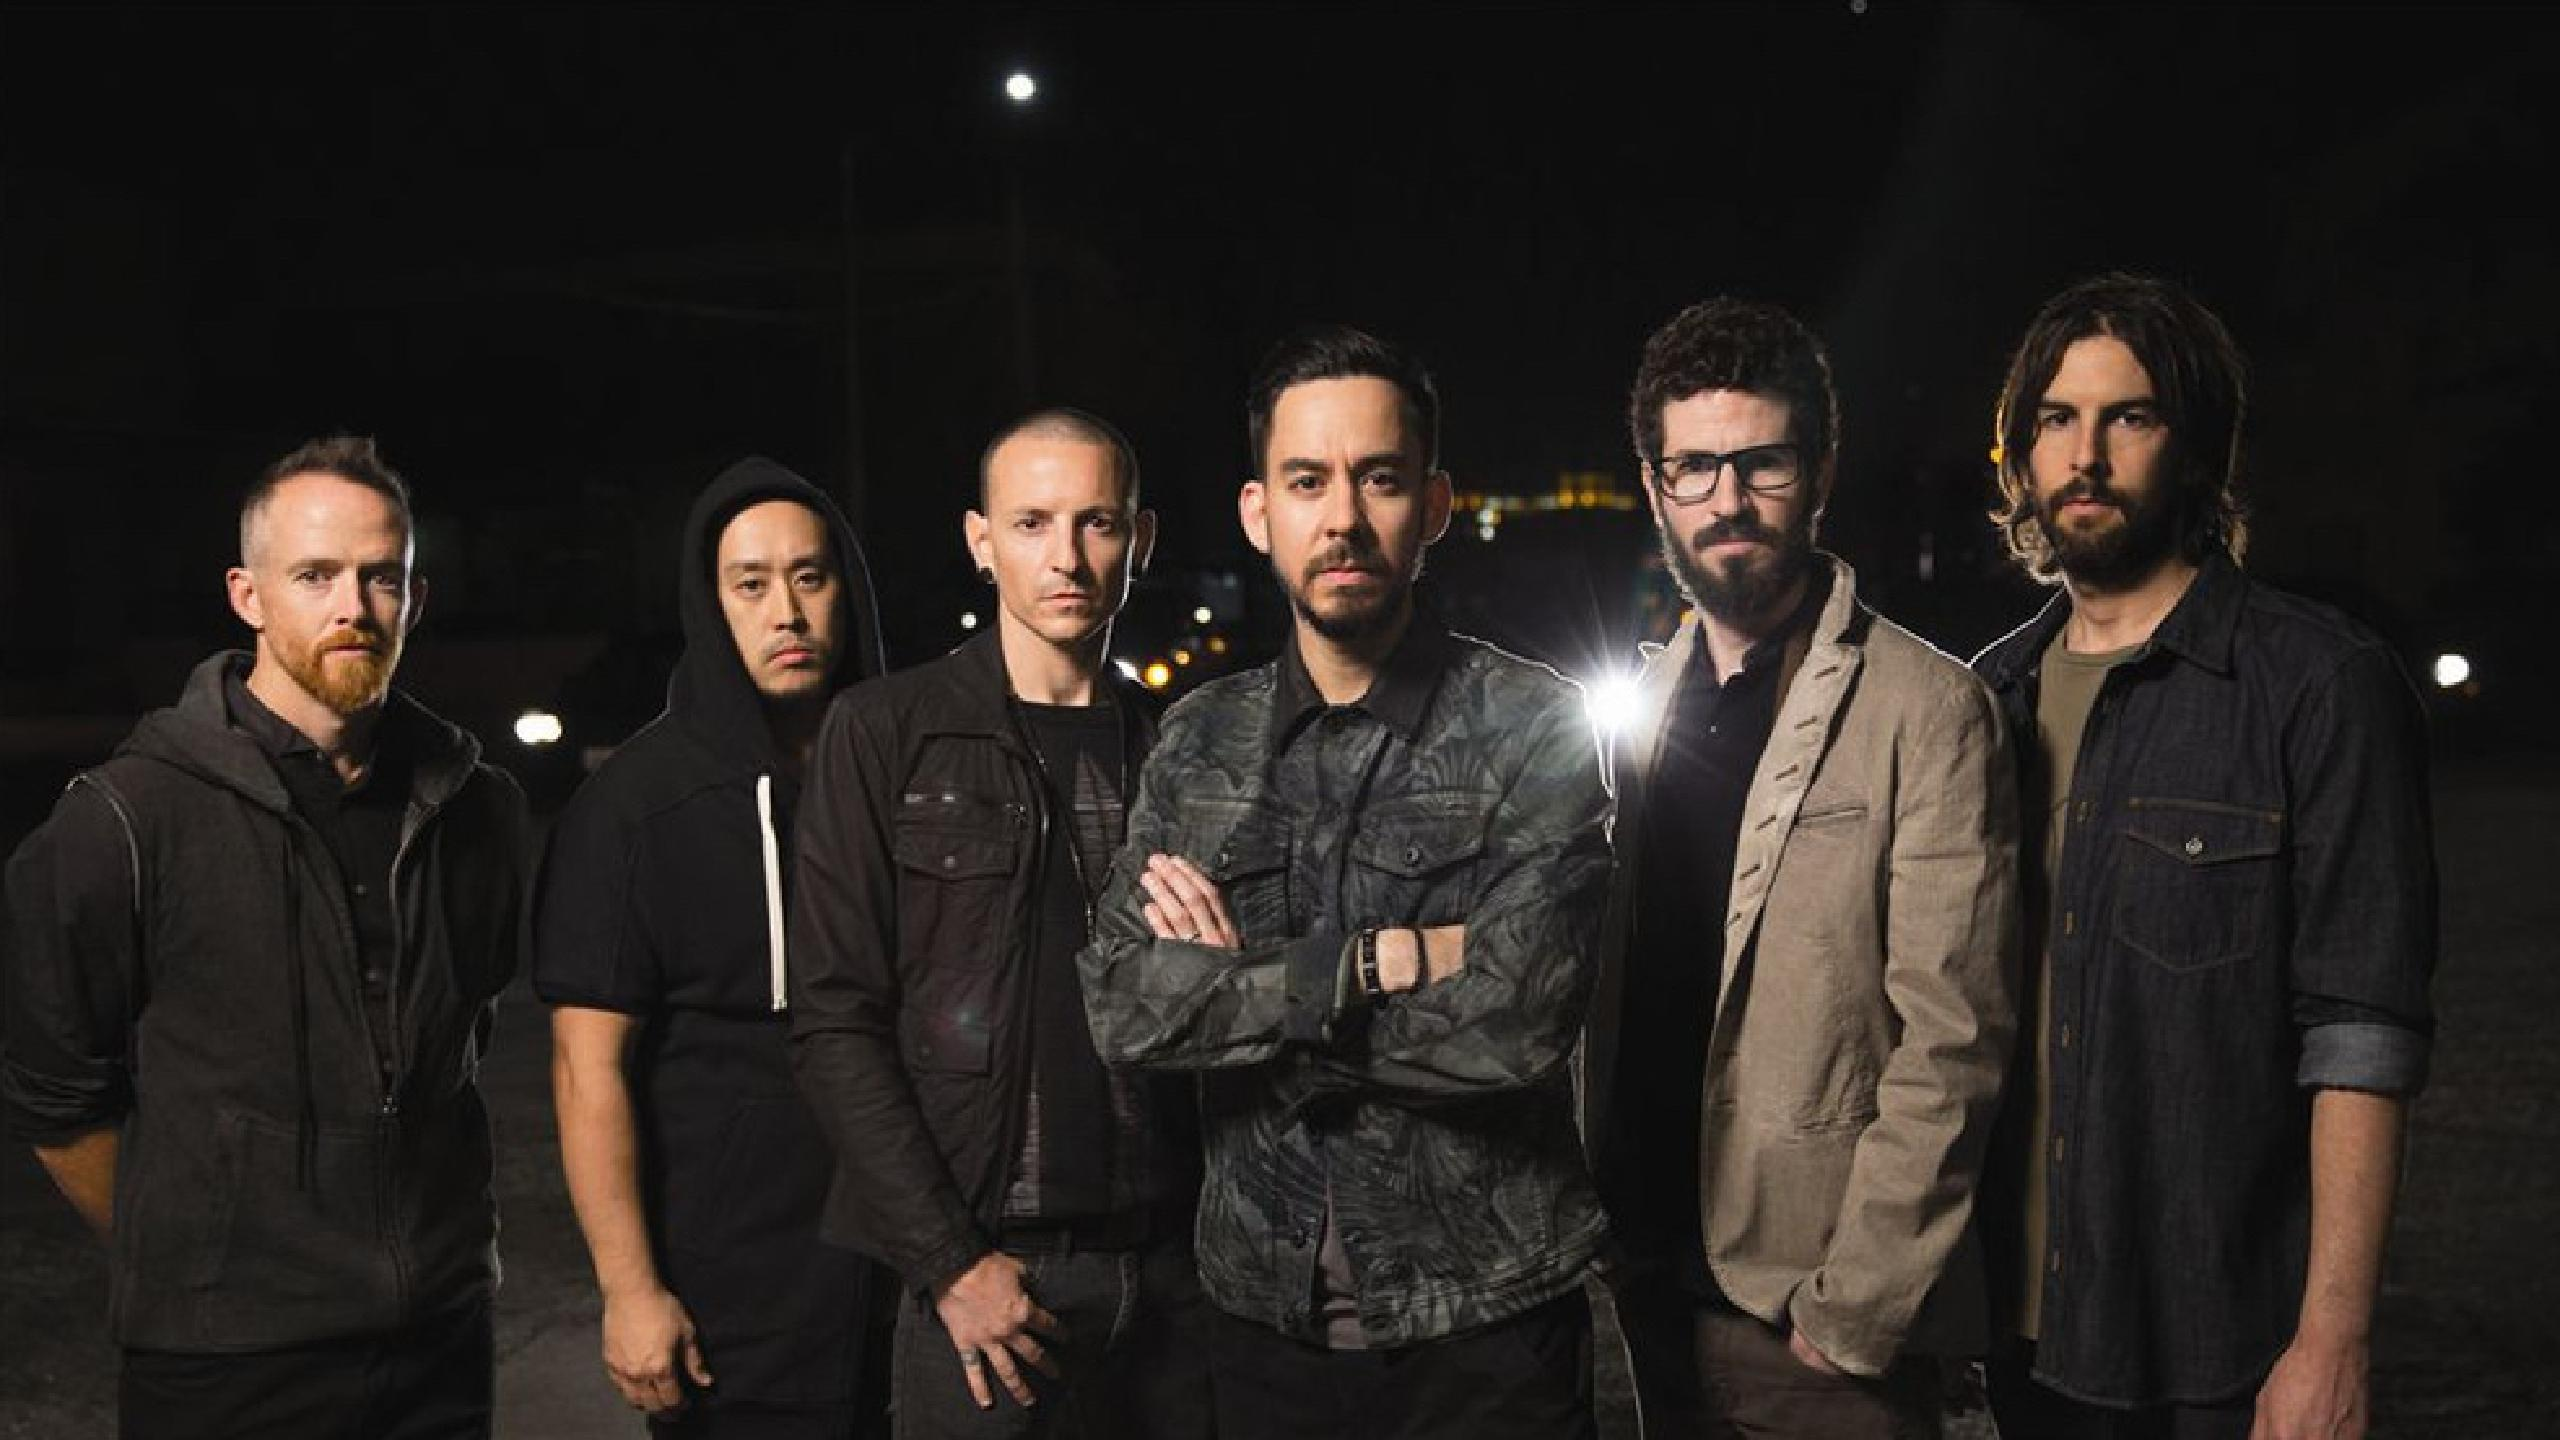 Linkin Park New Album 2020 Linkin Park tour dates 2019 2020. Linkin Park tickets and concerts